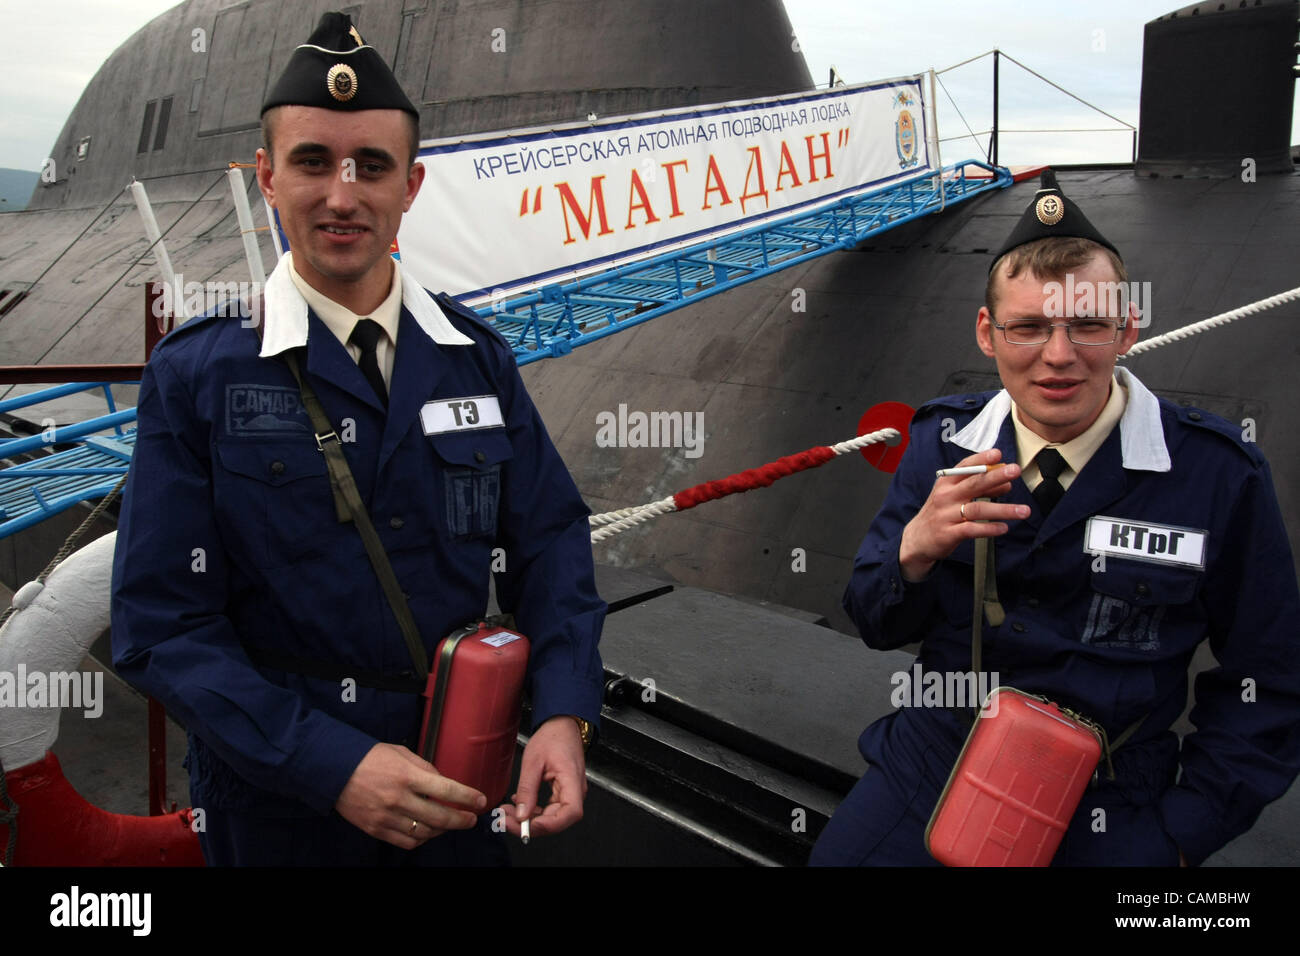 September 5, 2007,Vilyuchinsk, Kamchatka, Russia. Russian President Vladimir Putin (not pictured) visiting Rybachiy - Stock Image